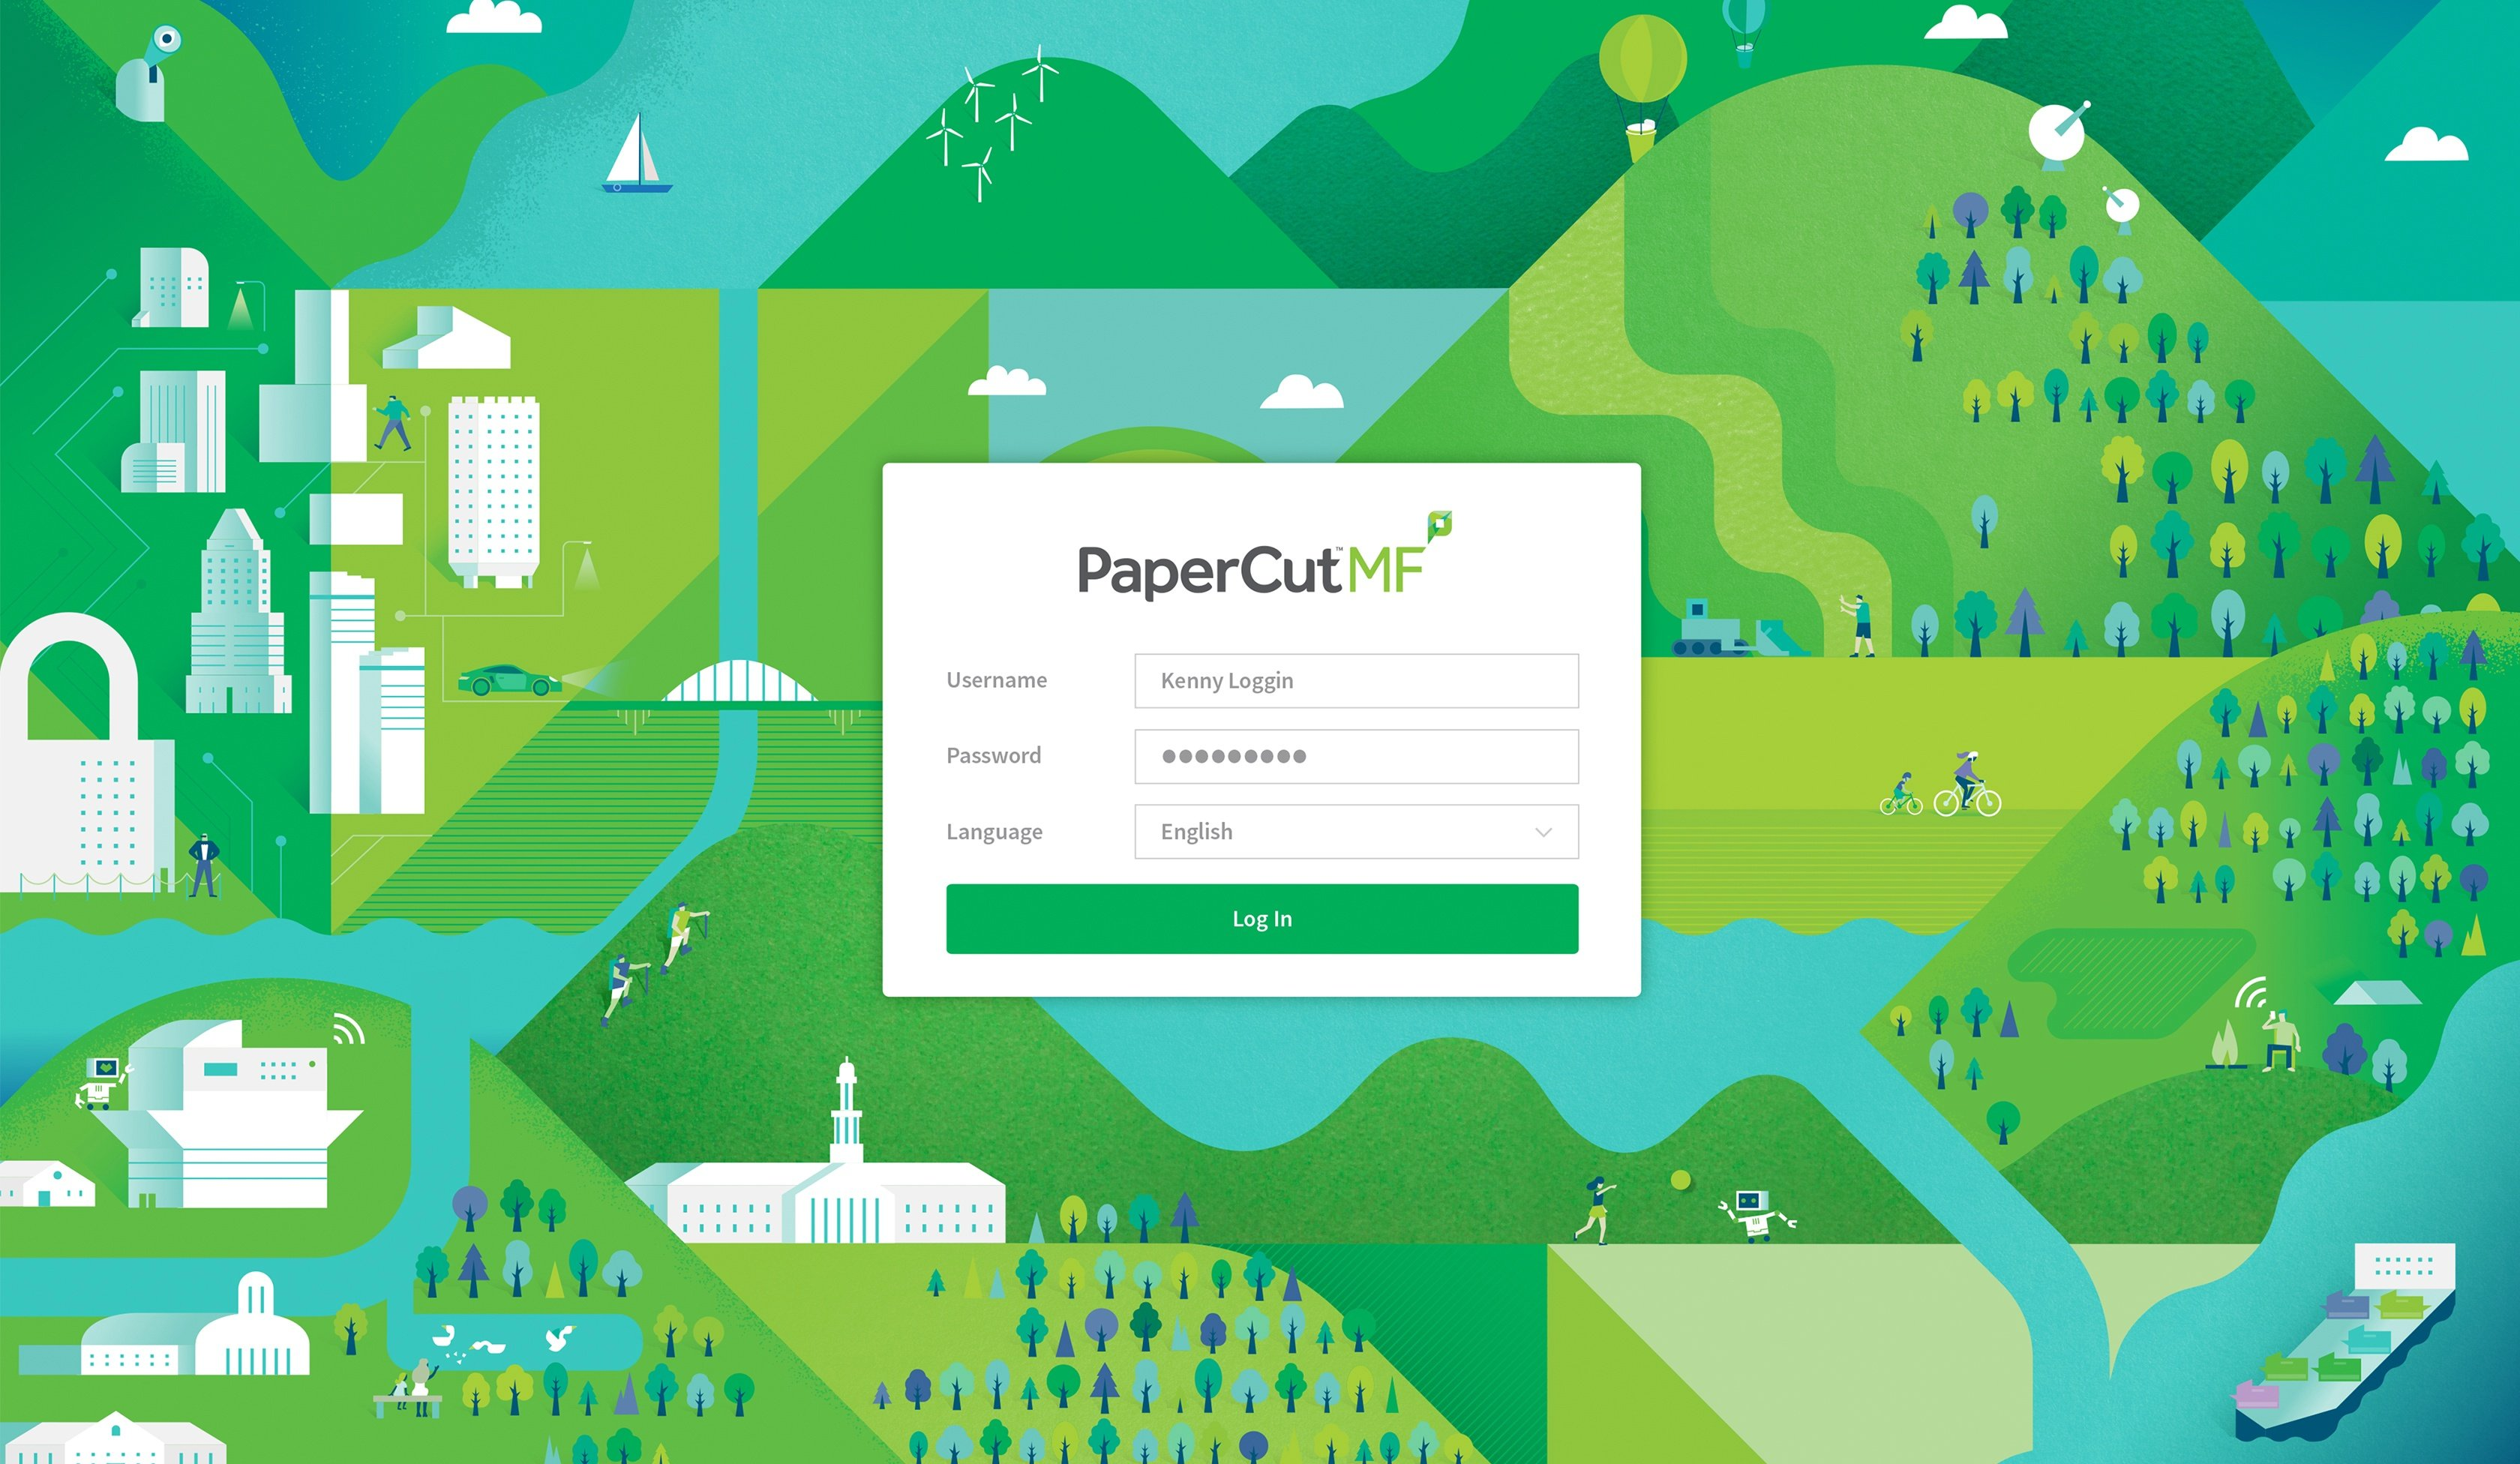 papercut-mf-login-17-0-2